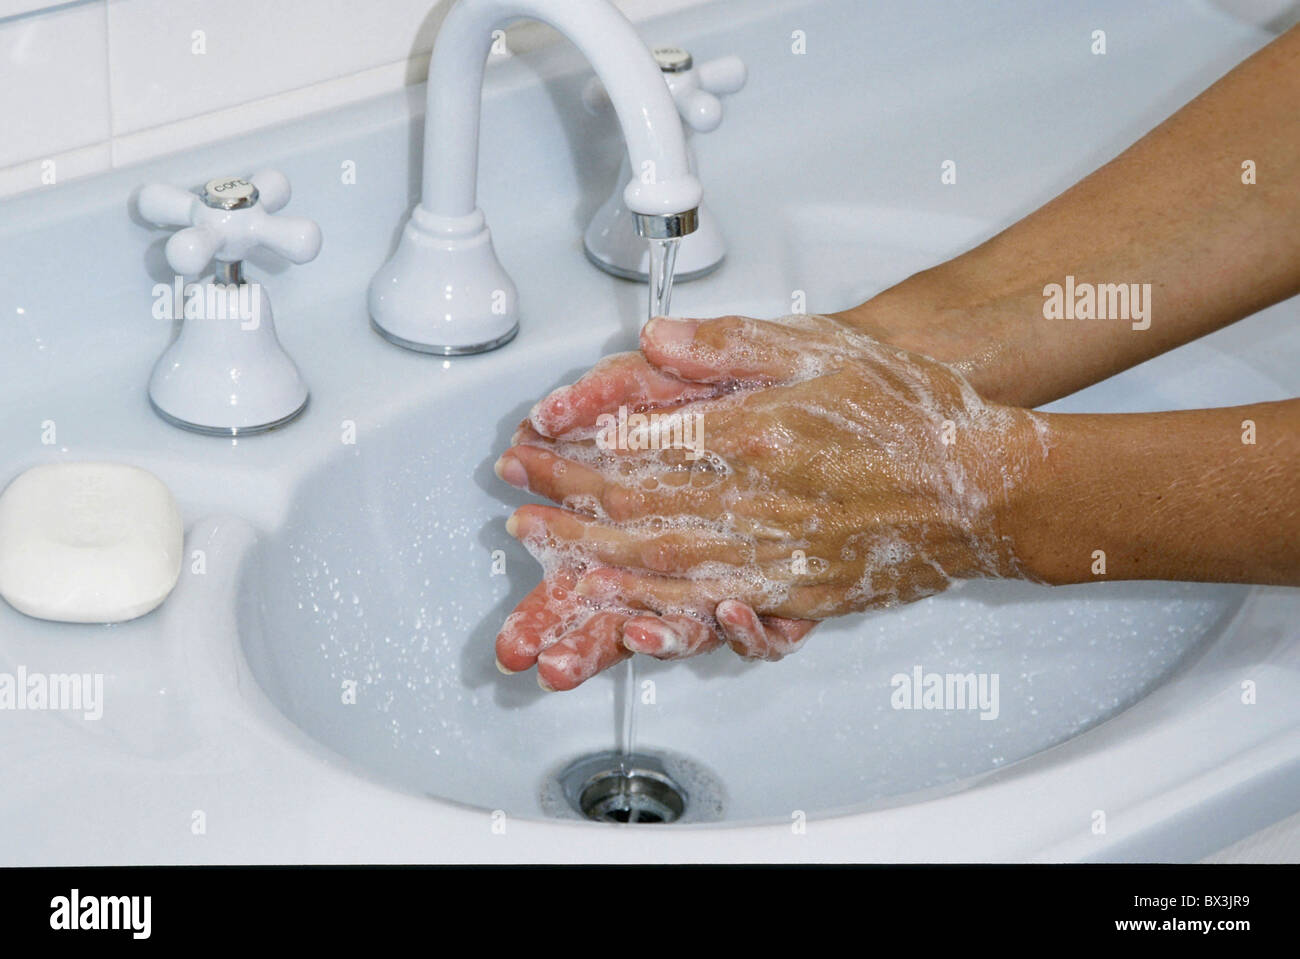 how to get clean hands